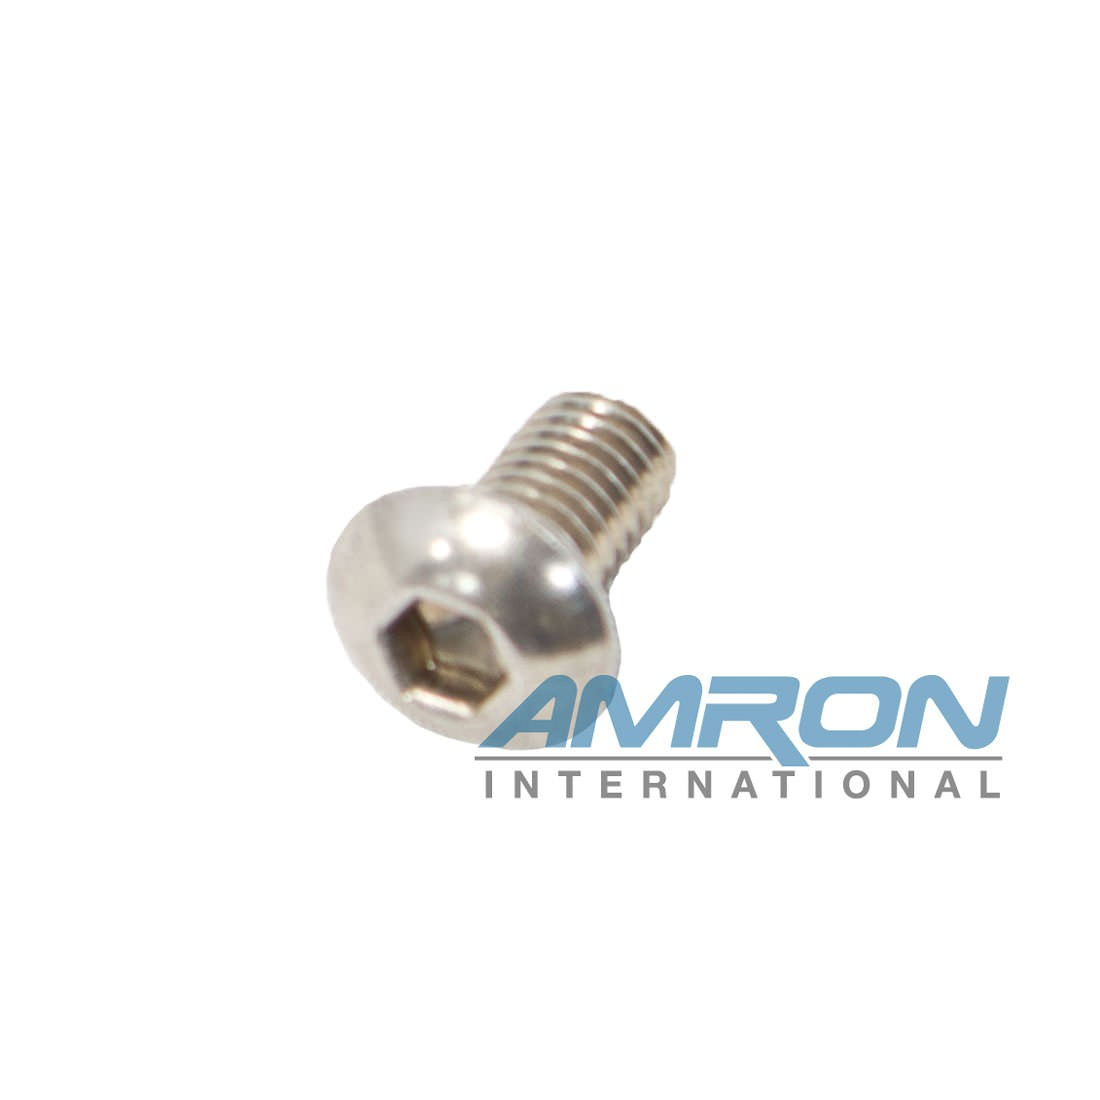 Kirby Morgan 330-020 Screw